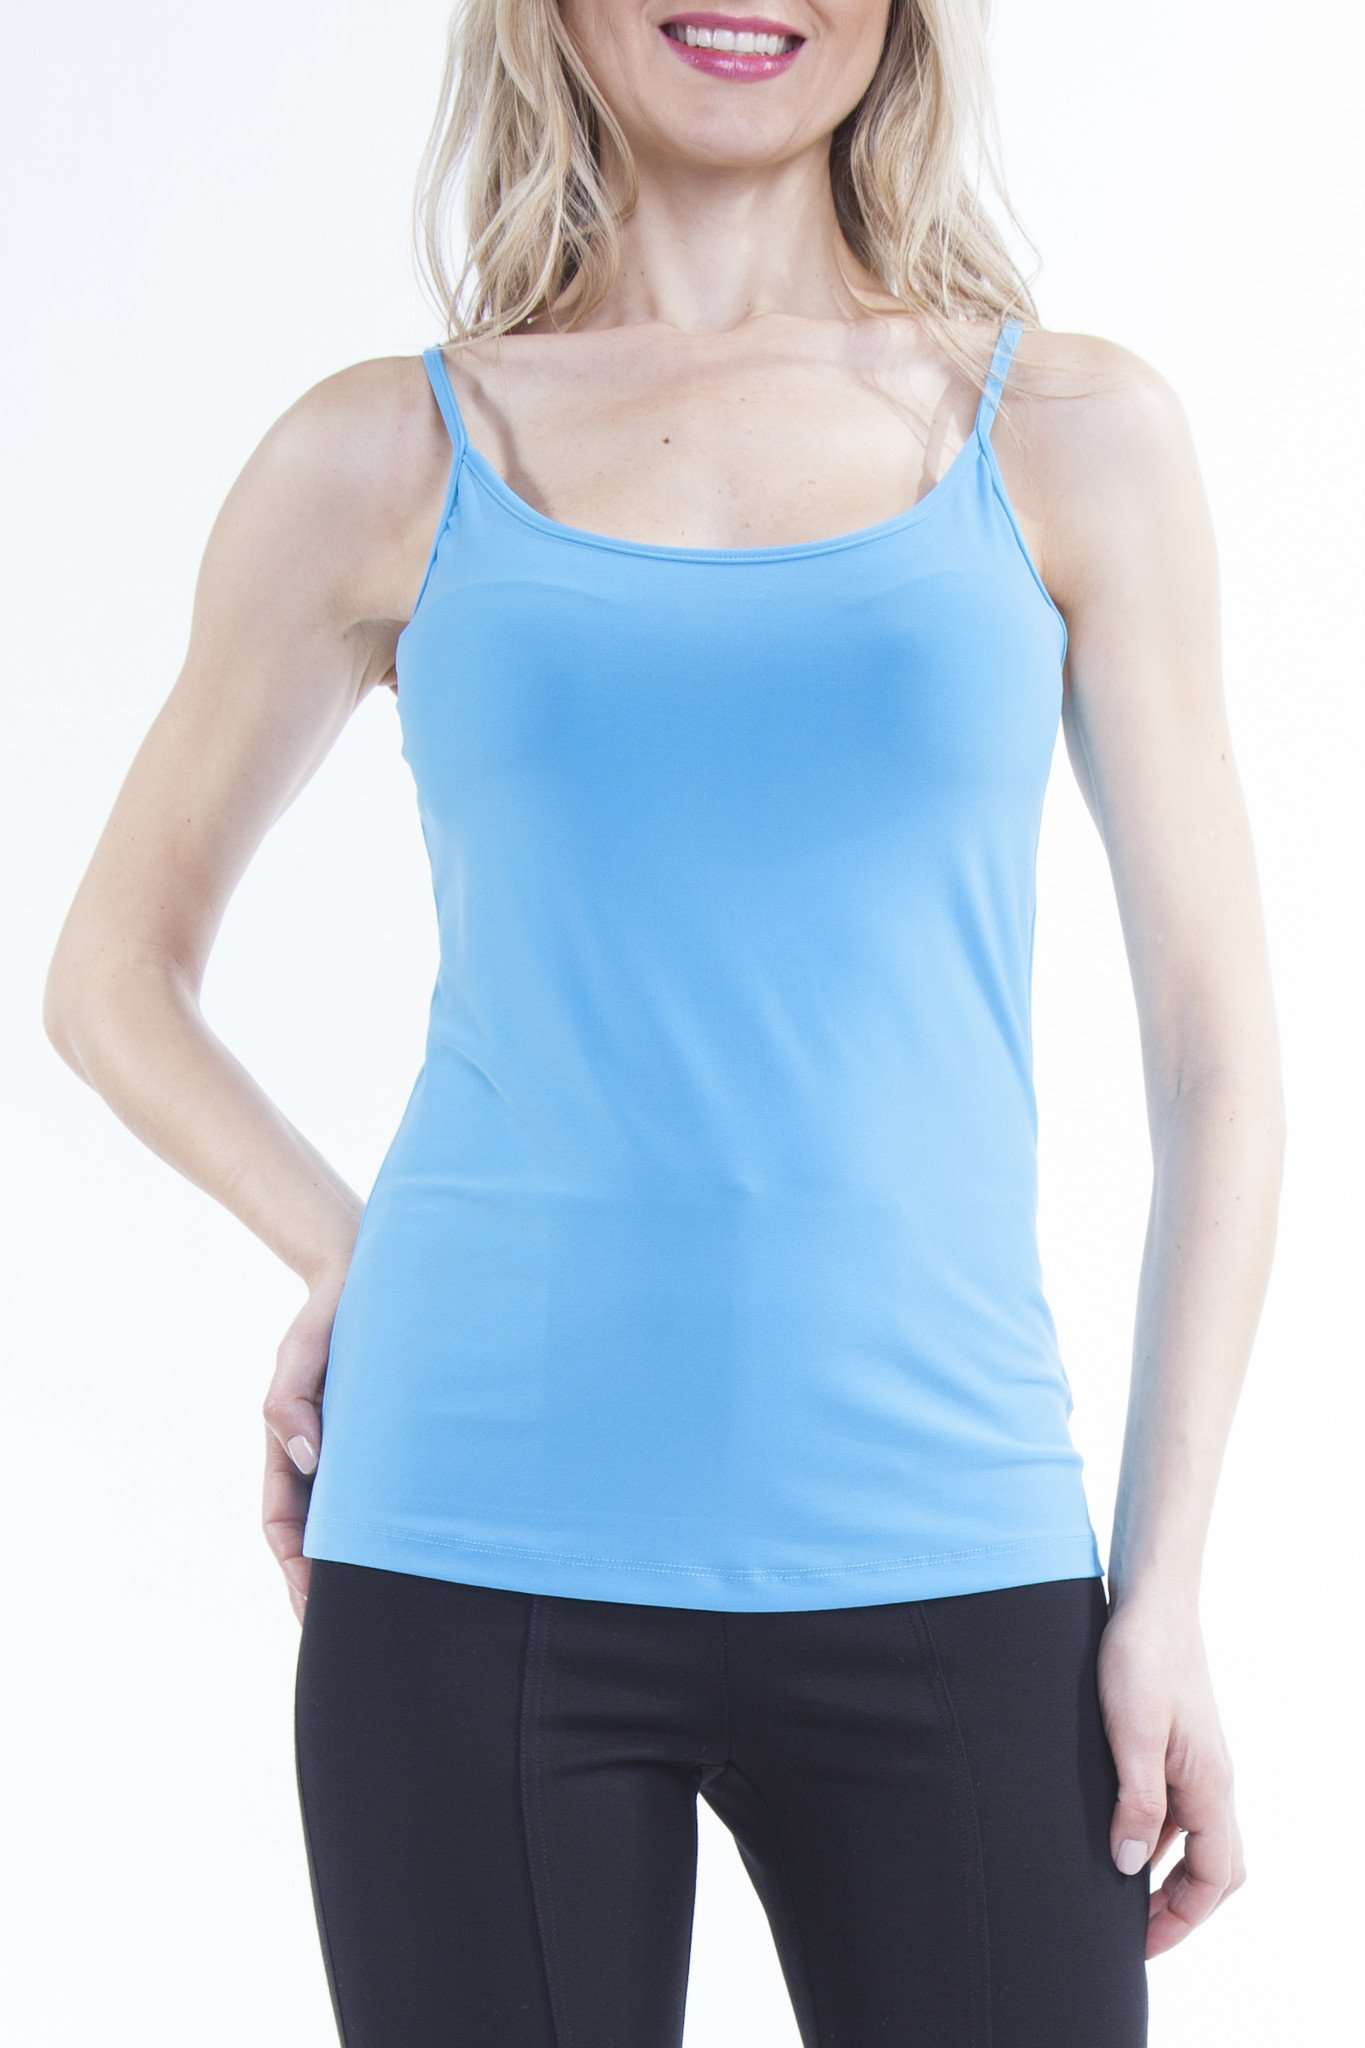 Women's Turquoise Spagetti Strap Camisole - Yvonne Marie